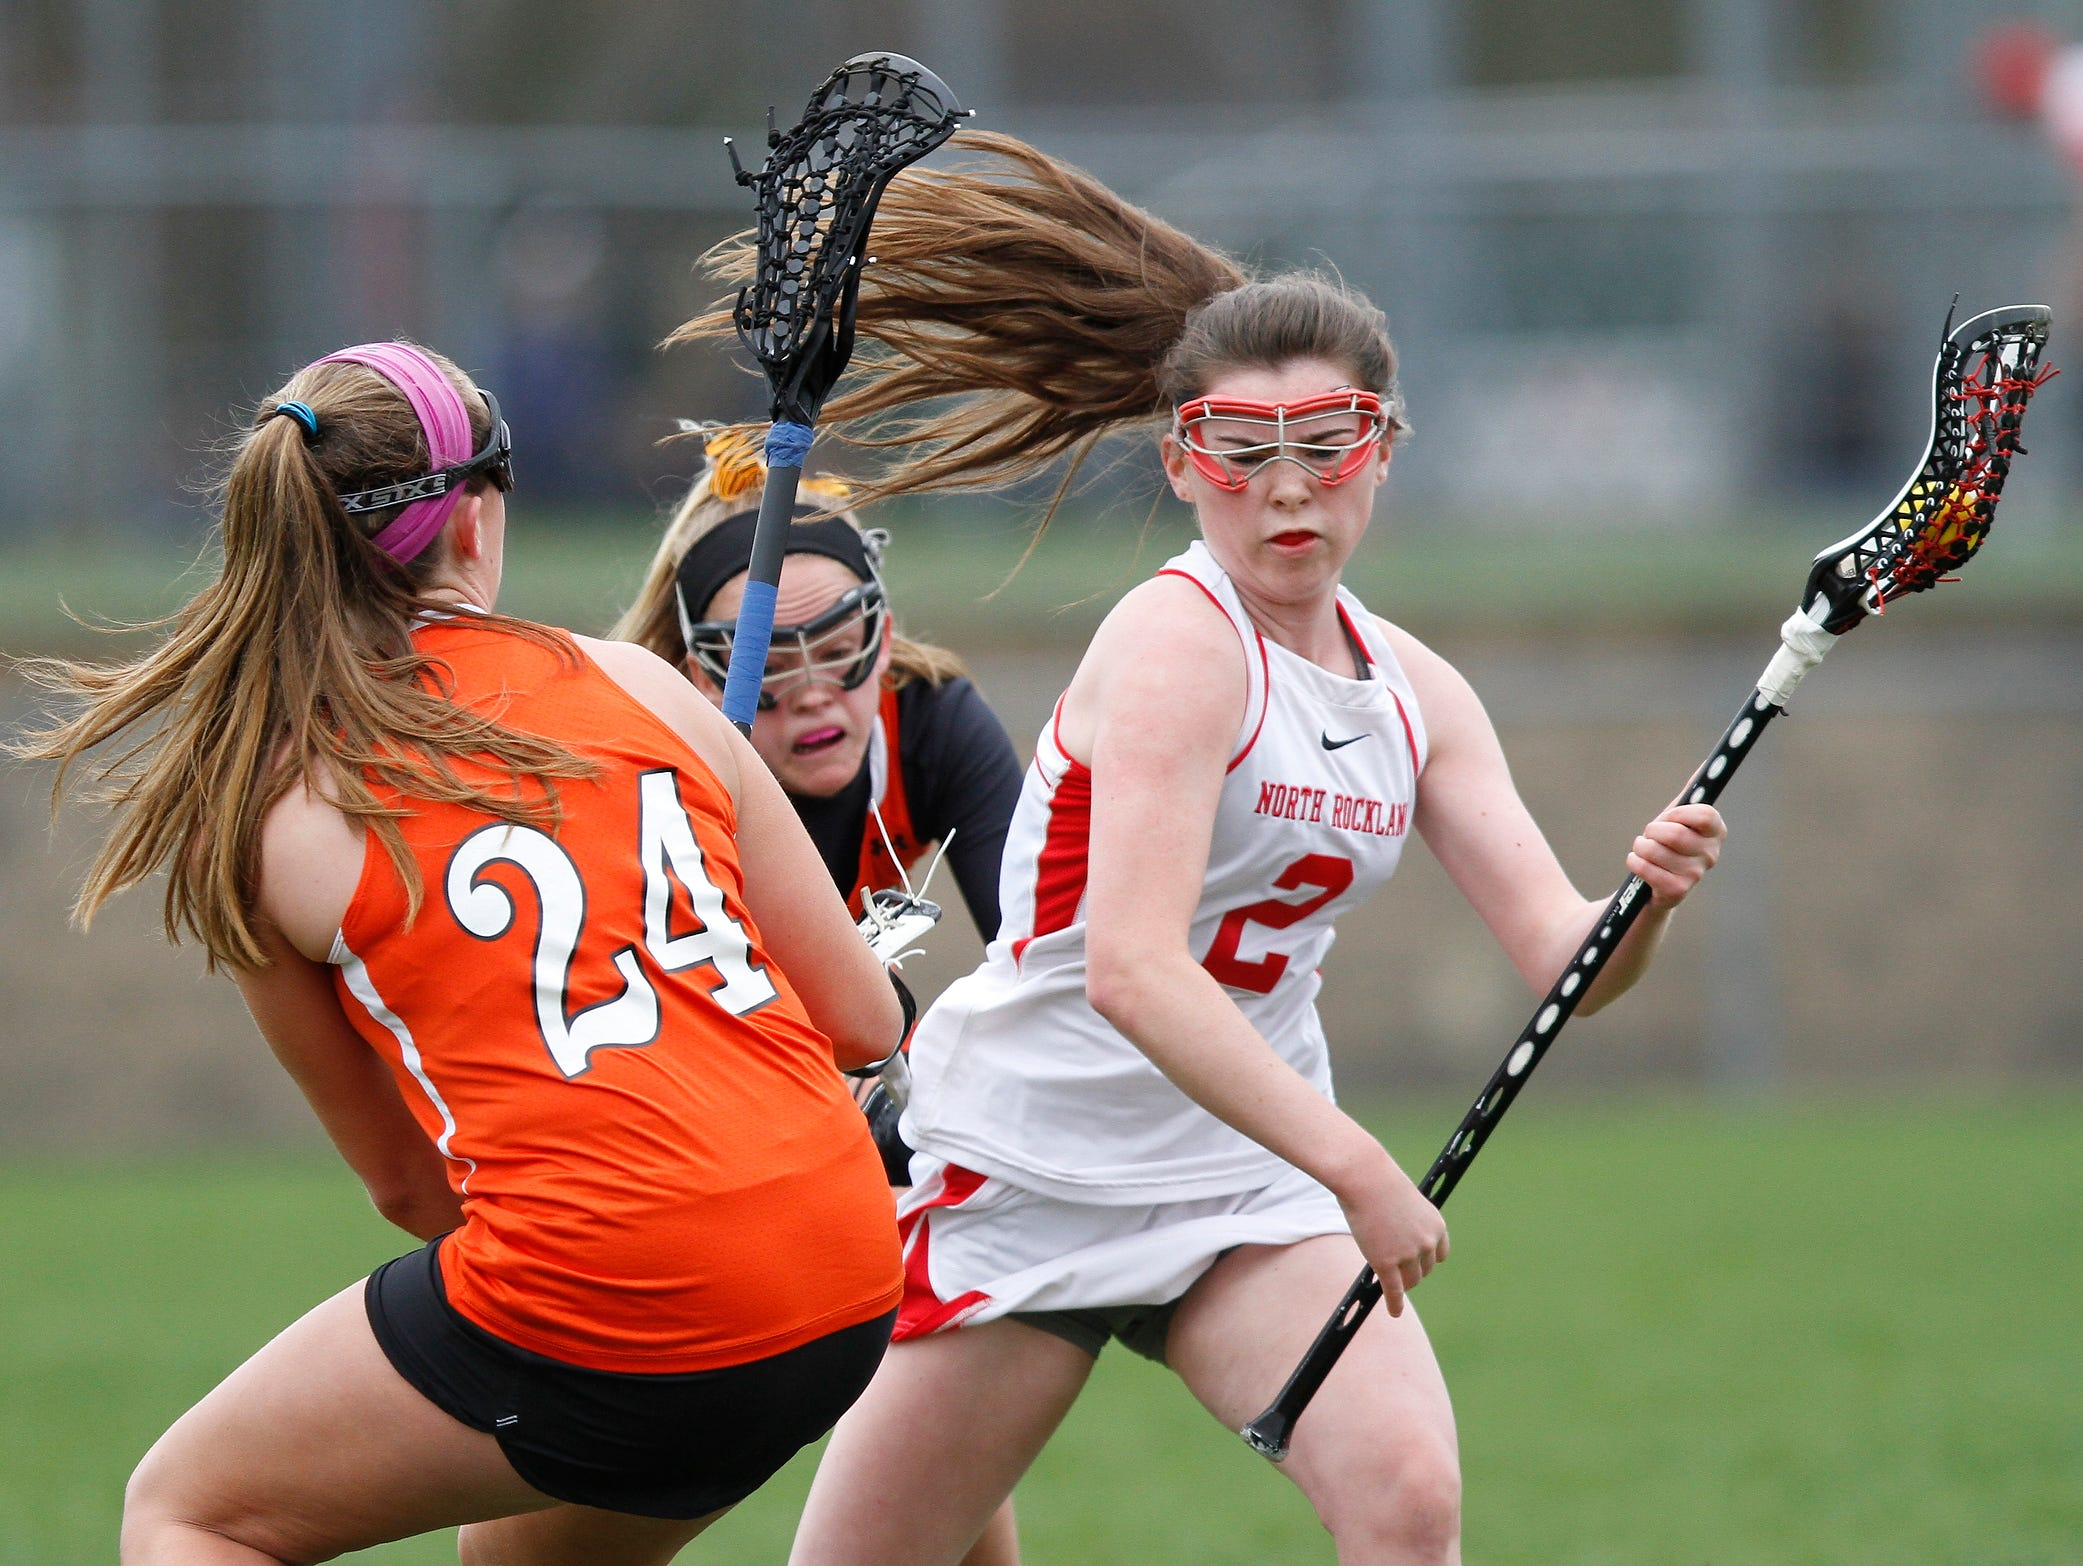 North Rockland's Elizabeth Fox (2) works the ball around Mamaroneck's Cassie Budill (24) during a girls lacrosse game at North Rockland High School in Thiells on Saturday, April 02, 2016.